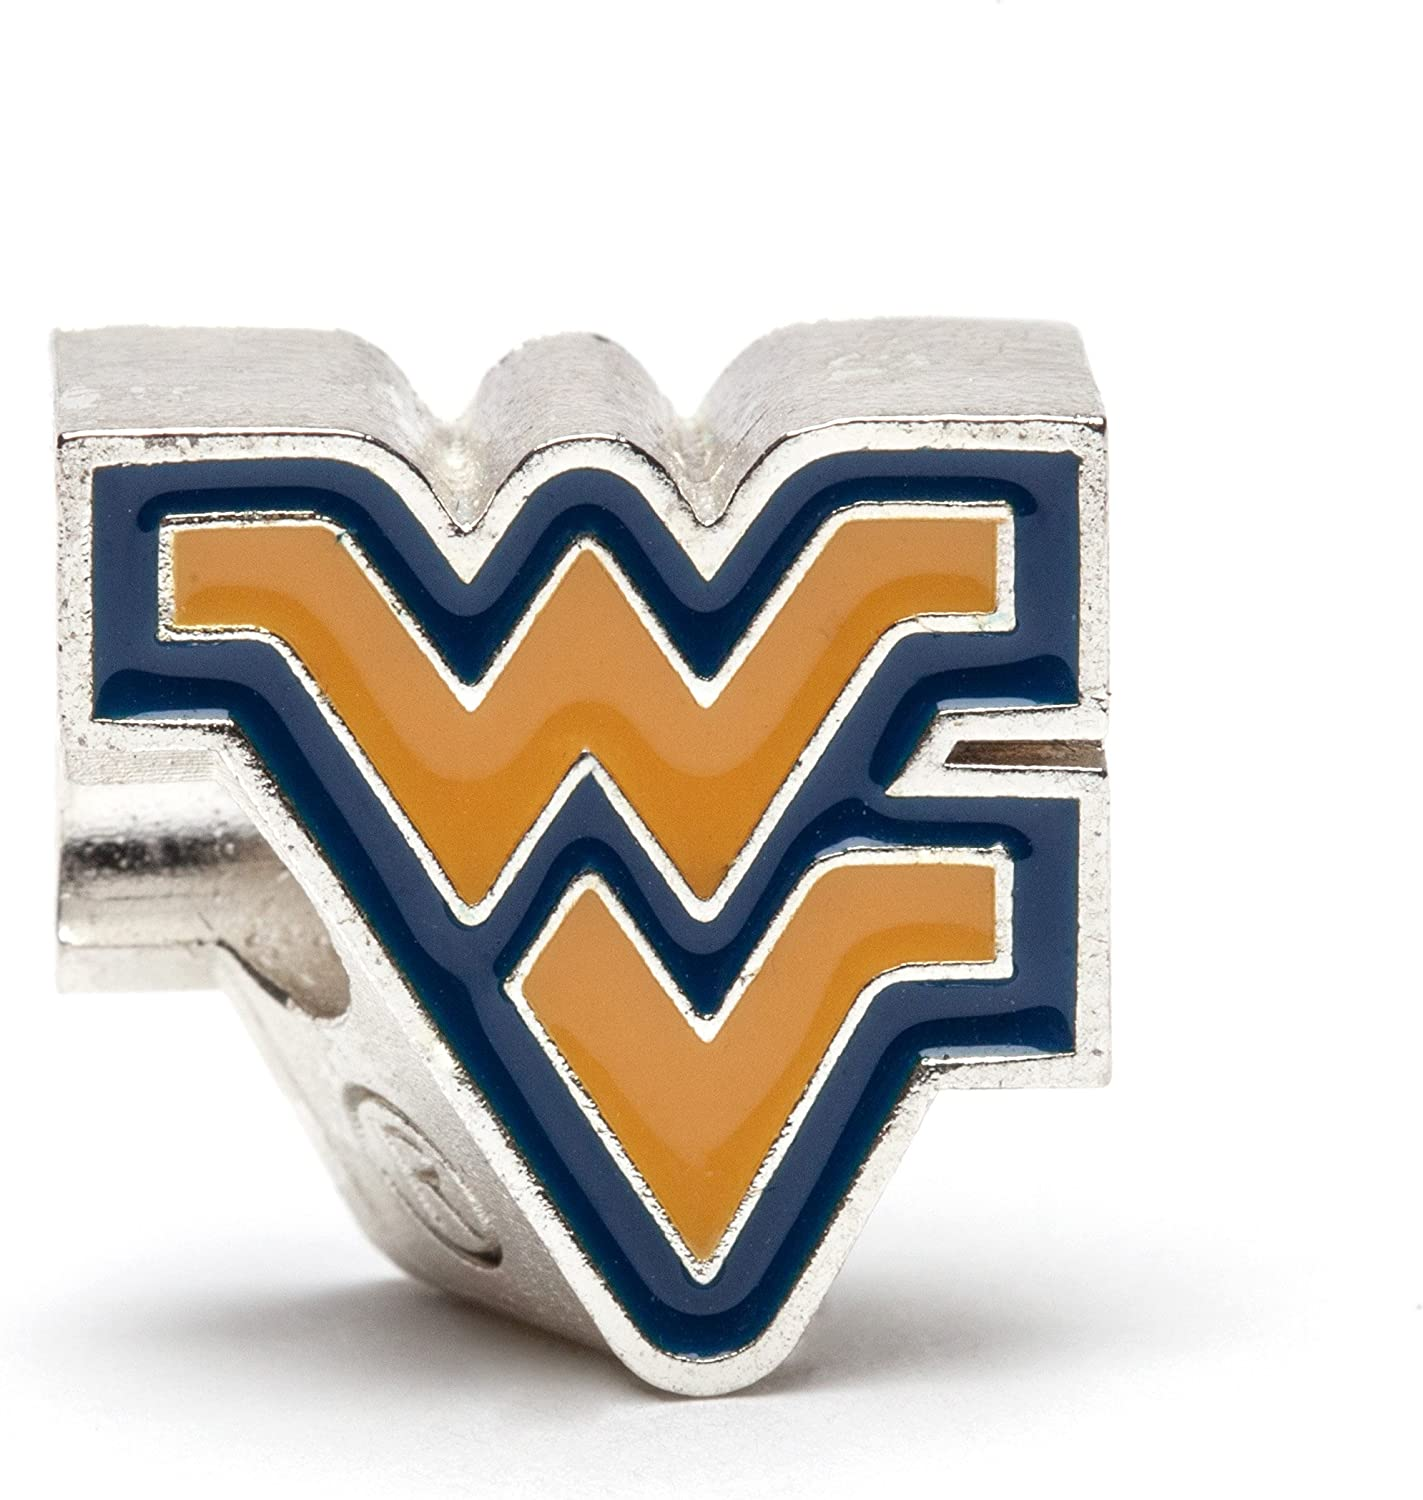 West Virginia University Bead Charm | West Virginia Stainless Steel Jewelry | Mountaineers WV Logo Charm | Fits Most Popular Charm Bracelets | Officially Licensed by WVU